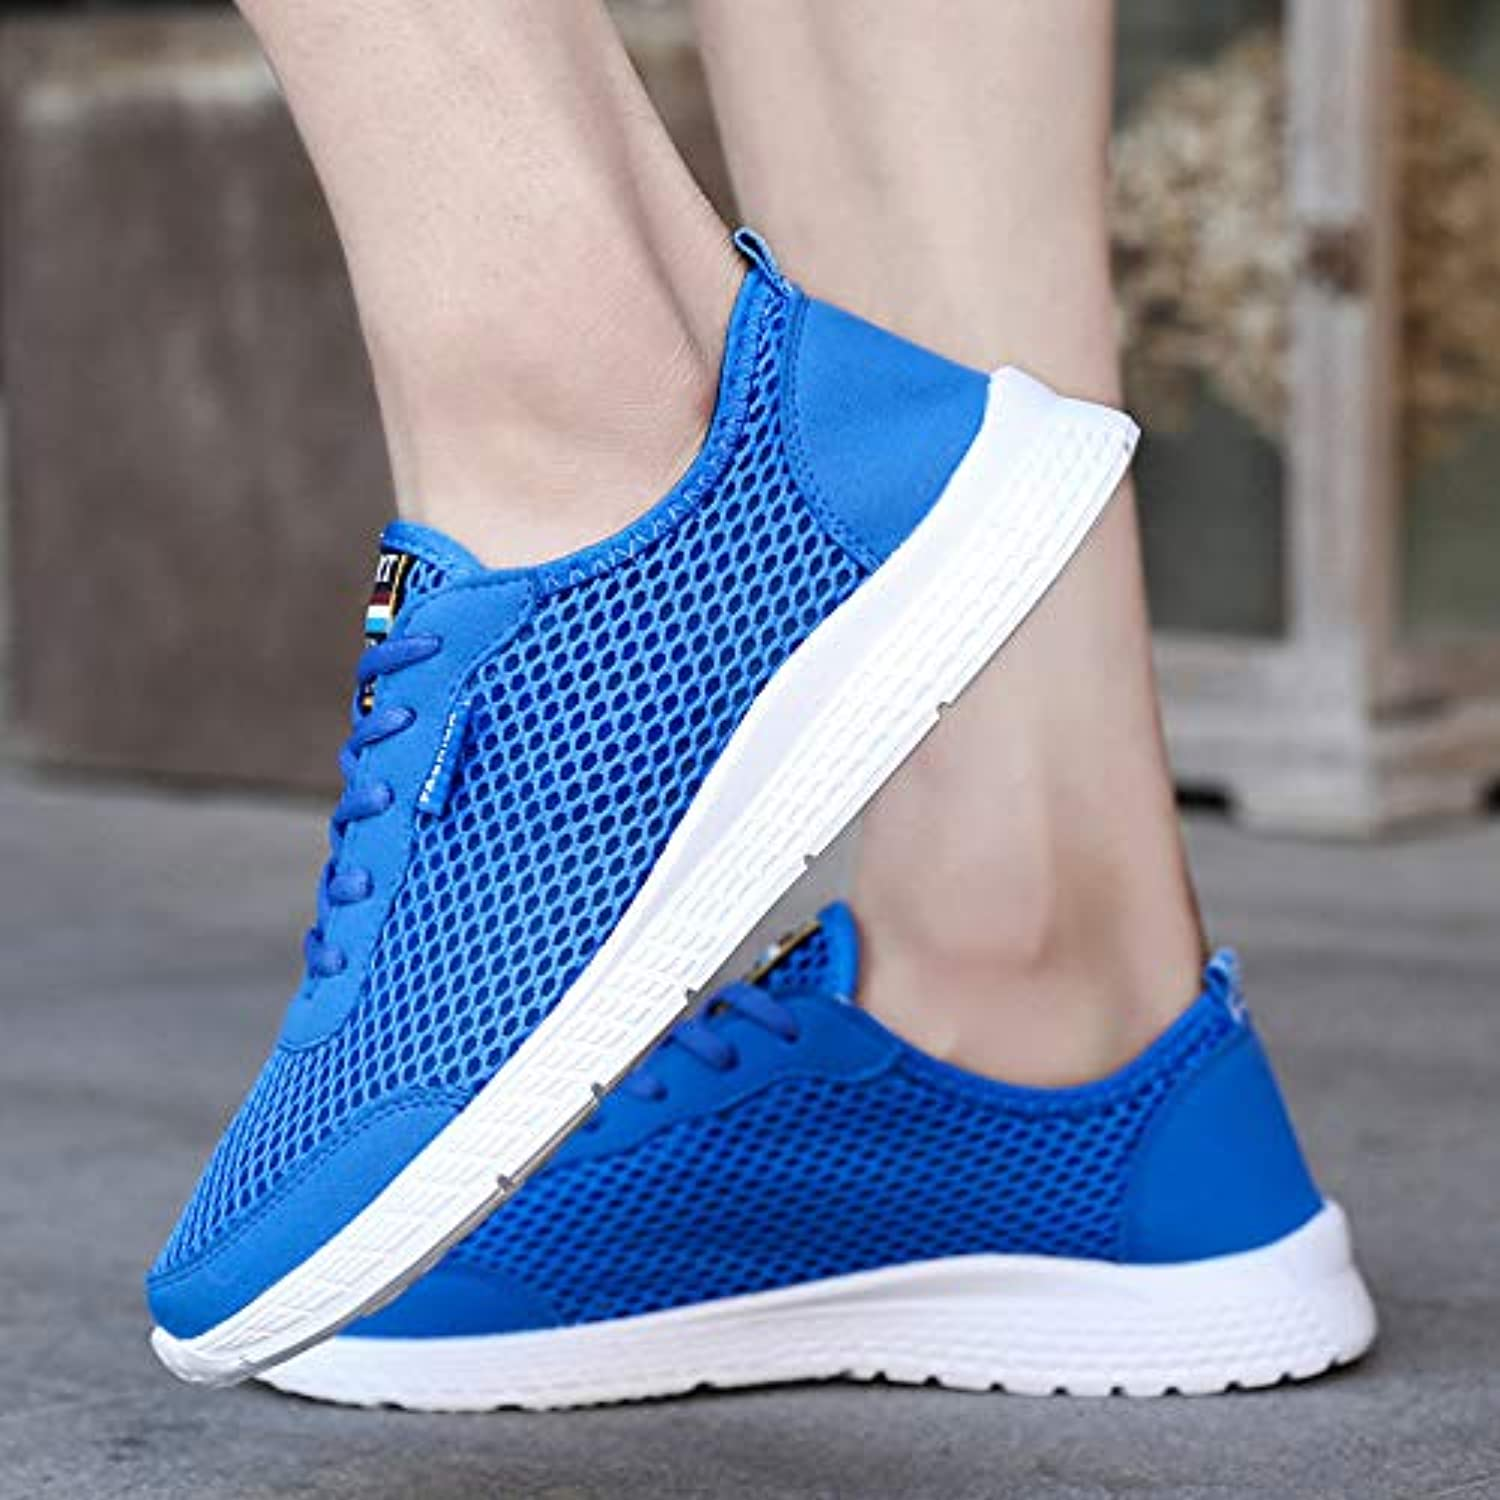 LOVDRAM Men'S shoes Large Size Season Running shoes Mesh shoes Breathable Casual Lightweight Shock Absorber Running shoes 35-50